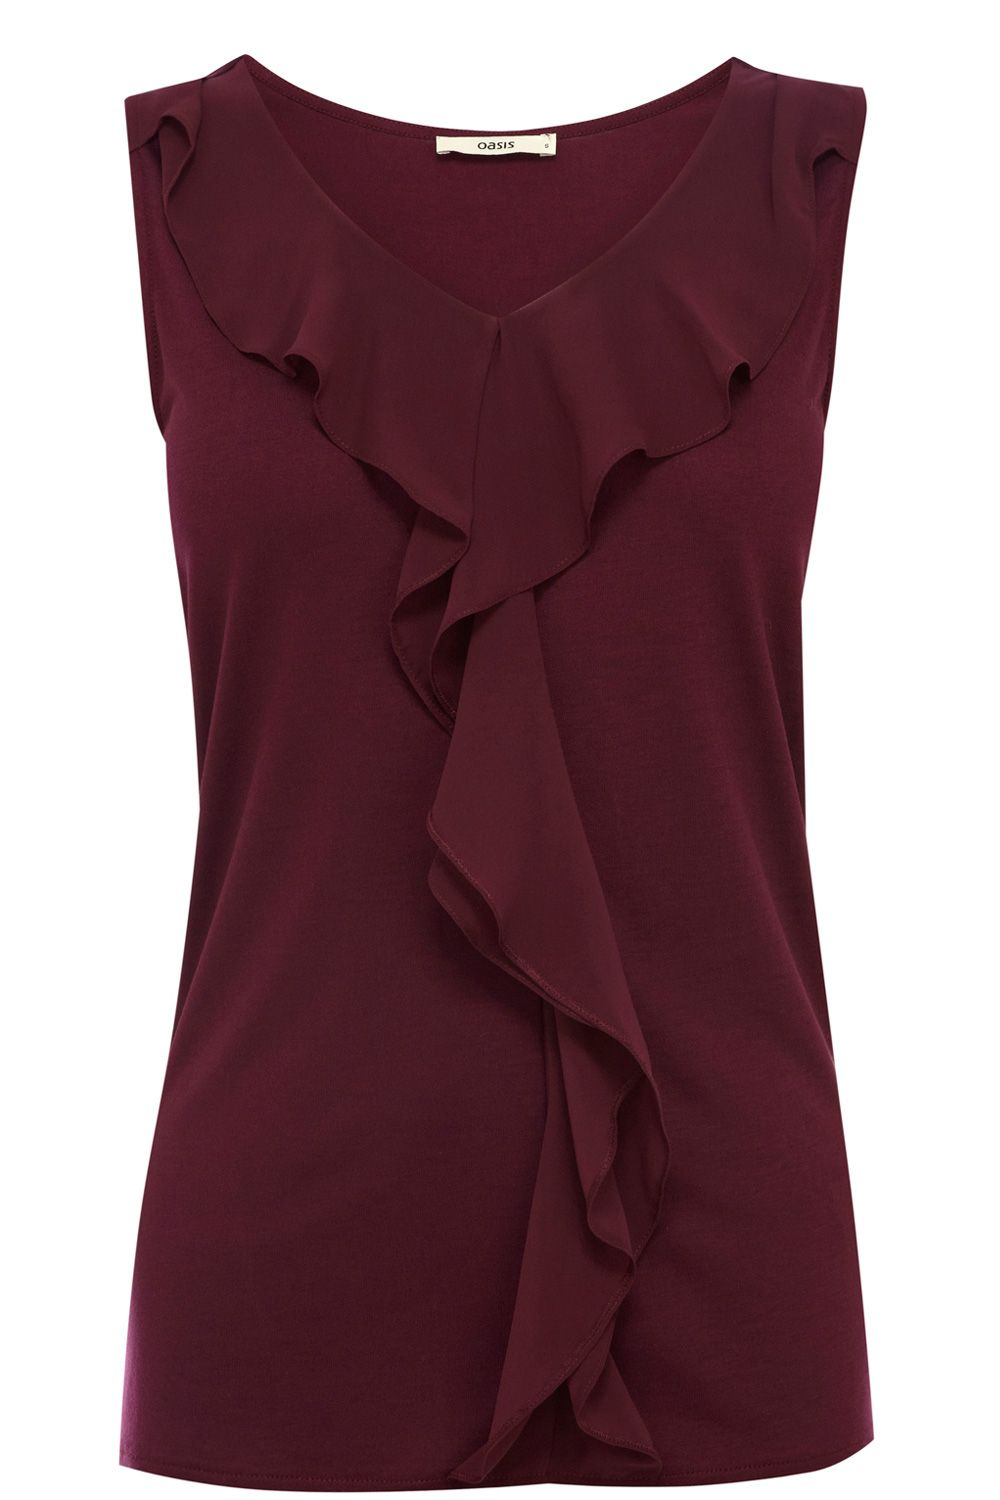 2678a5975203ec Ruffle Shell Top | Red | Oasis Stores | Style | Tops, Shell tops ...